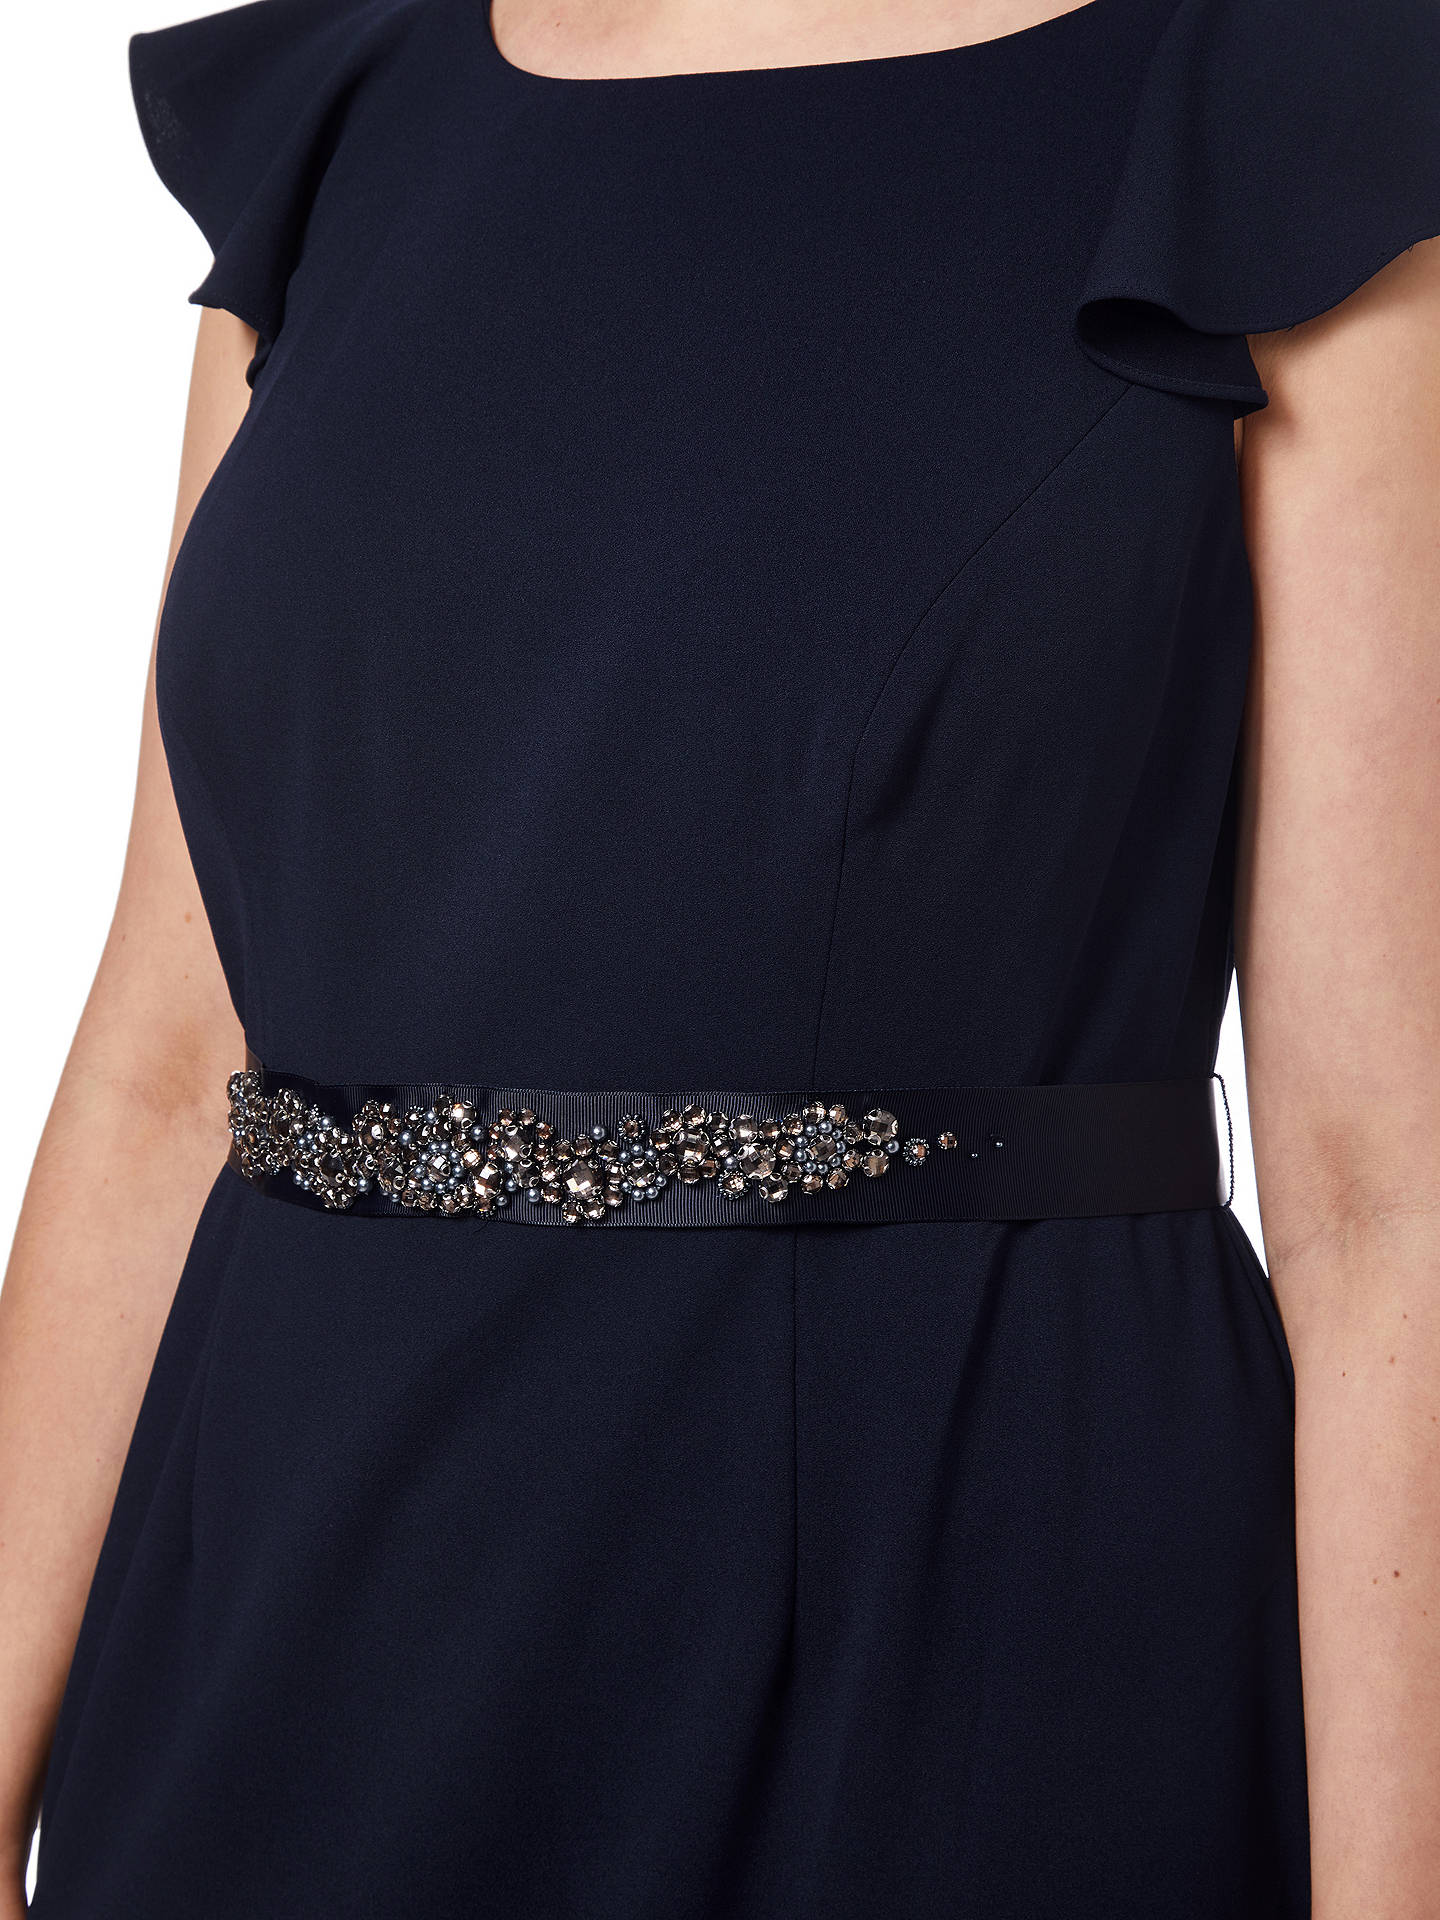 BuyAdrianna Papell Beaded Crepe Dress, Midnight, 18 Online at johnlewis.com